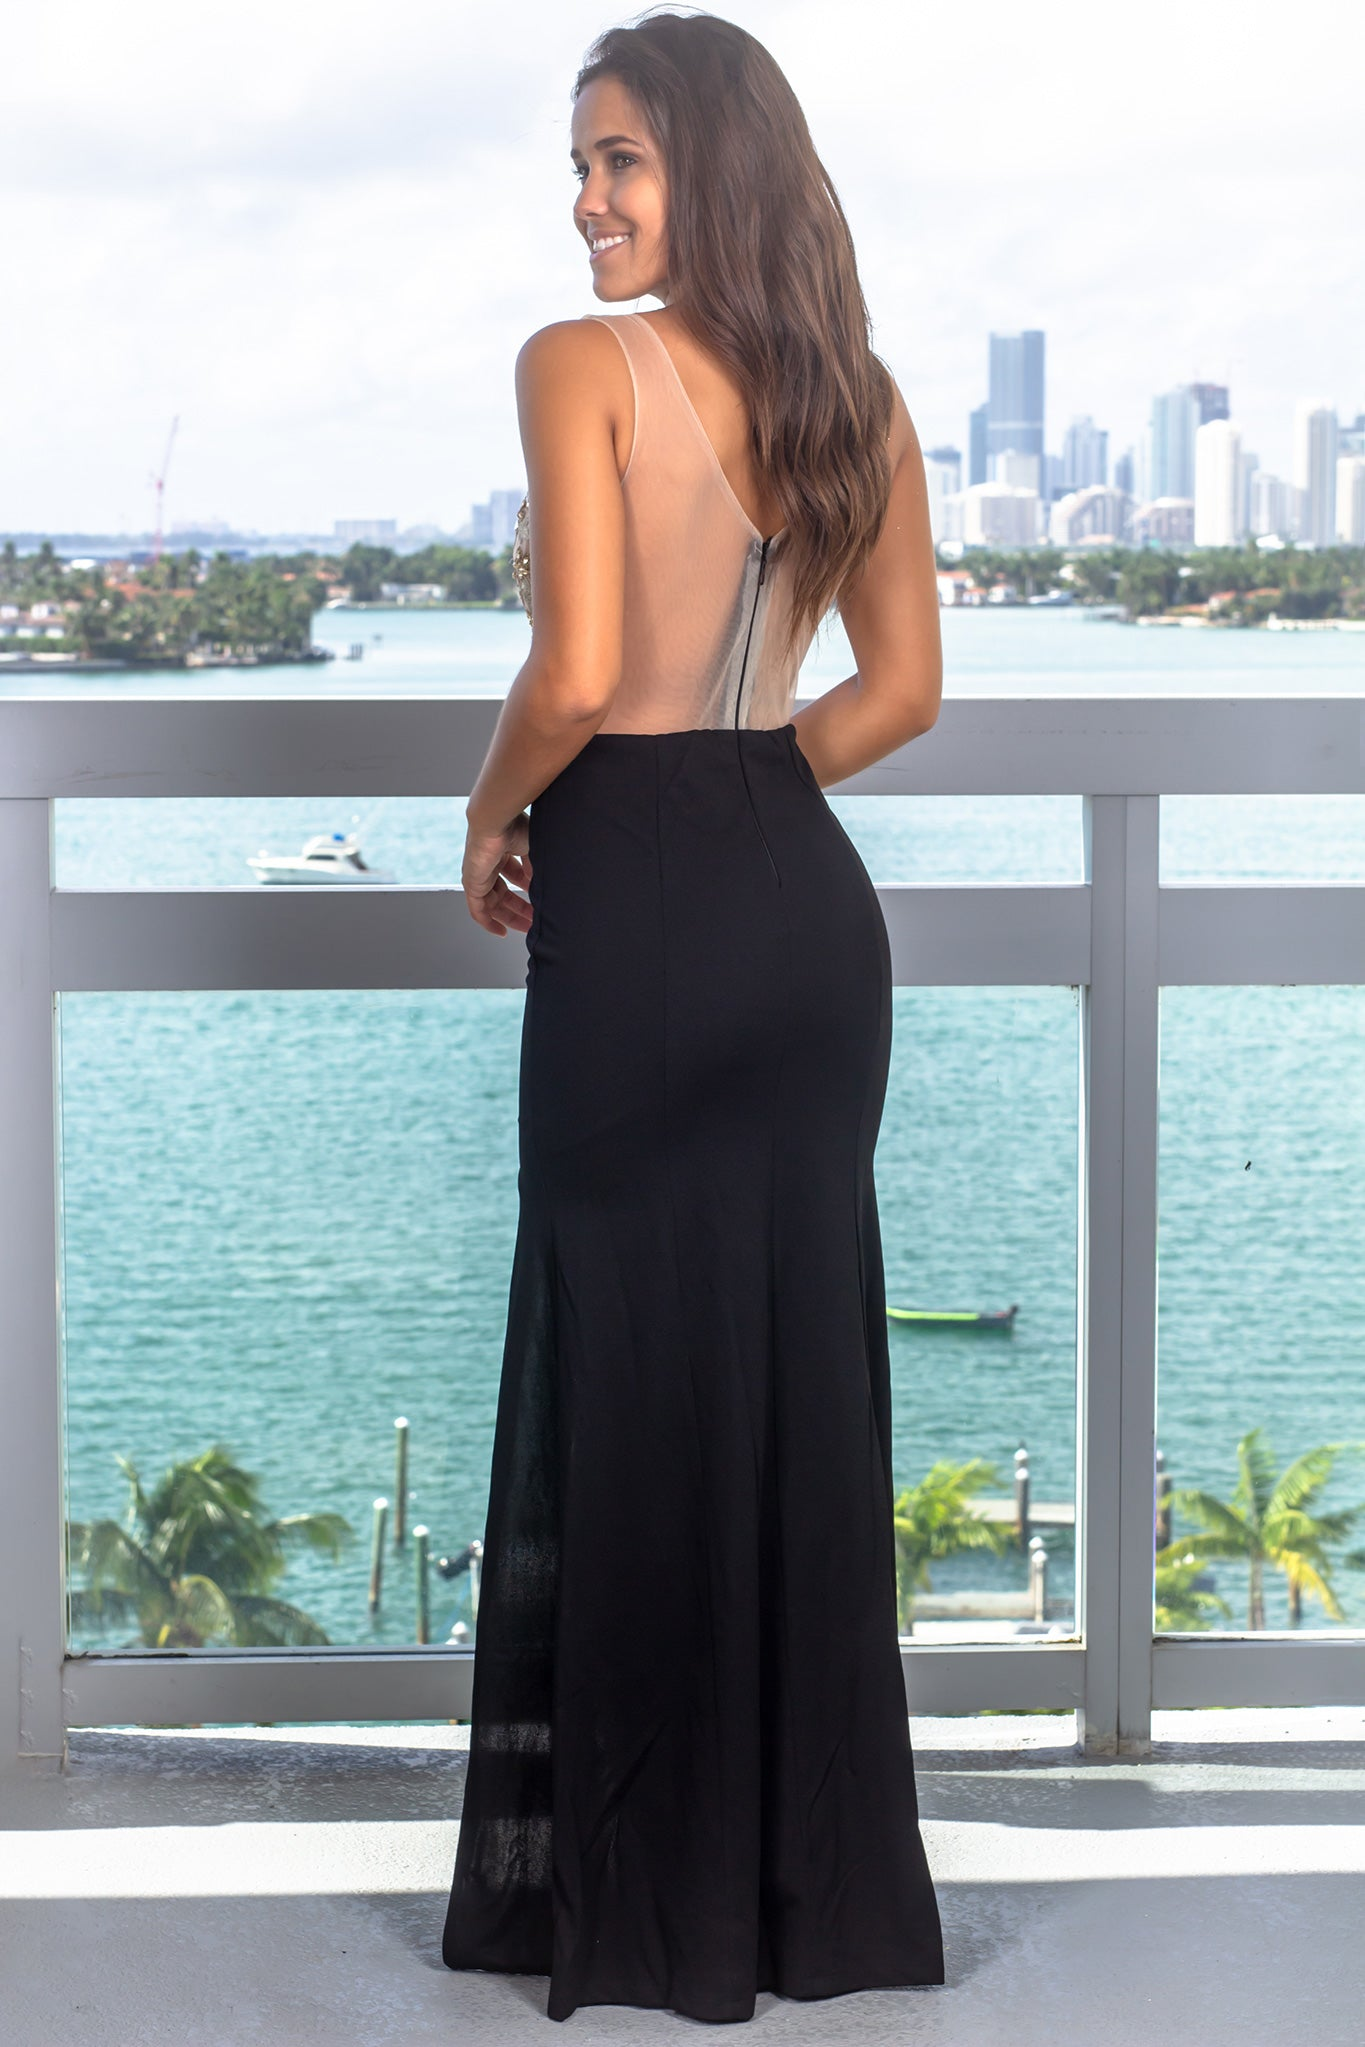 Black and Nude Maxi Dress with Jewel Detail